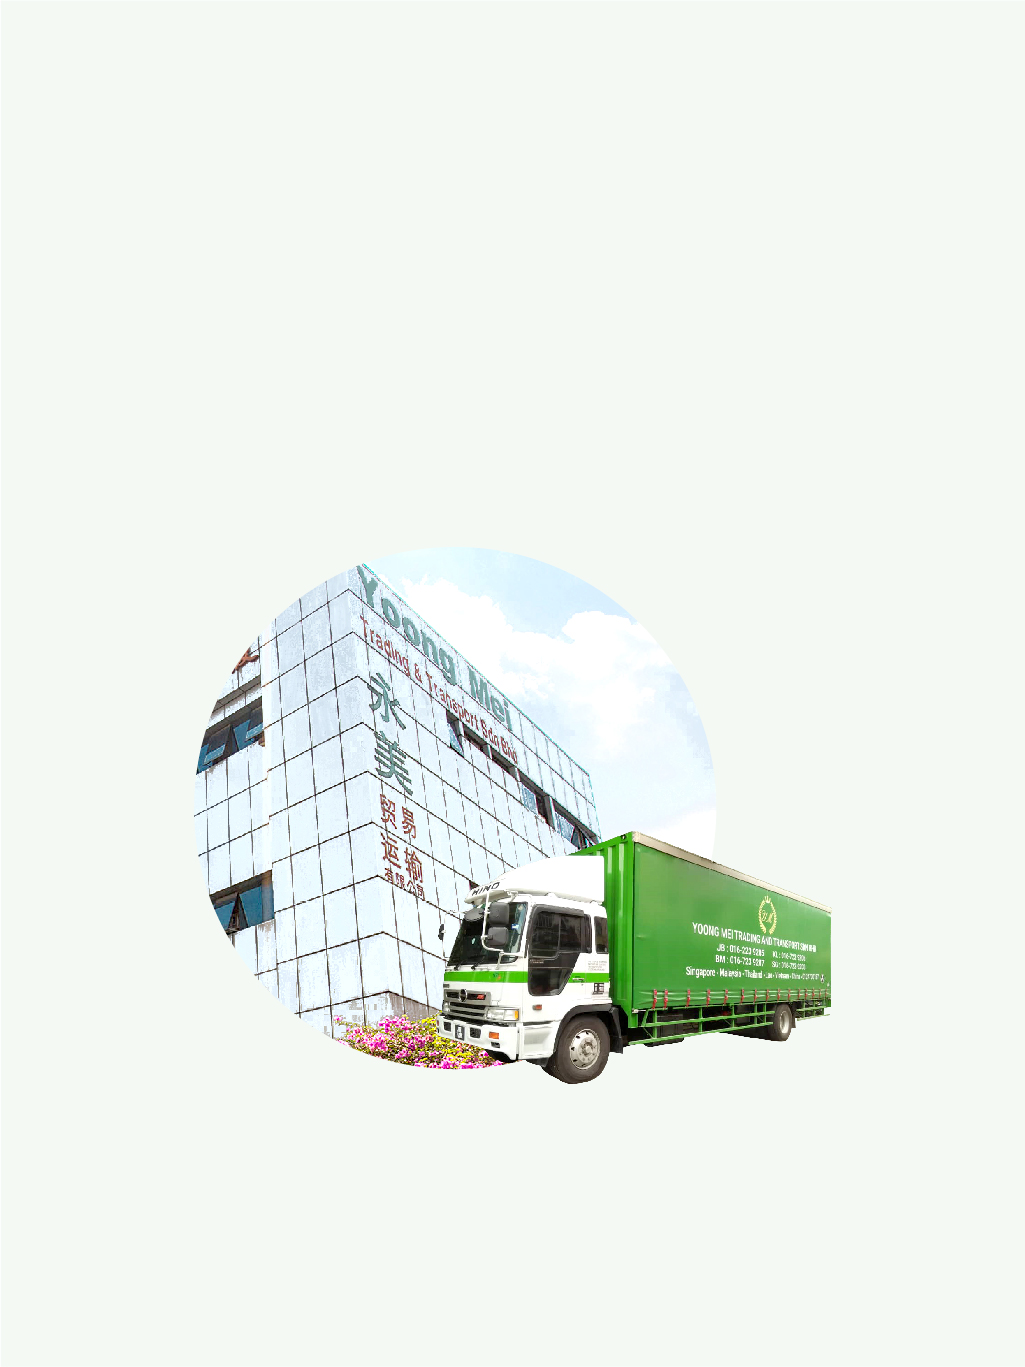 Yoong Mei Trading & Transport SDN BHD